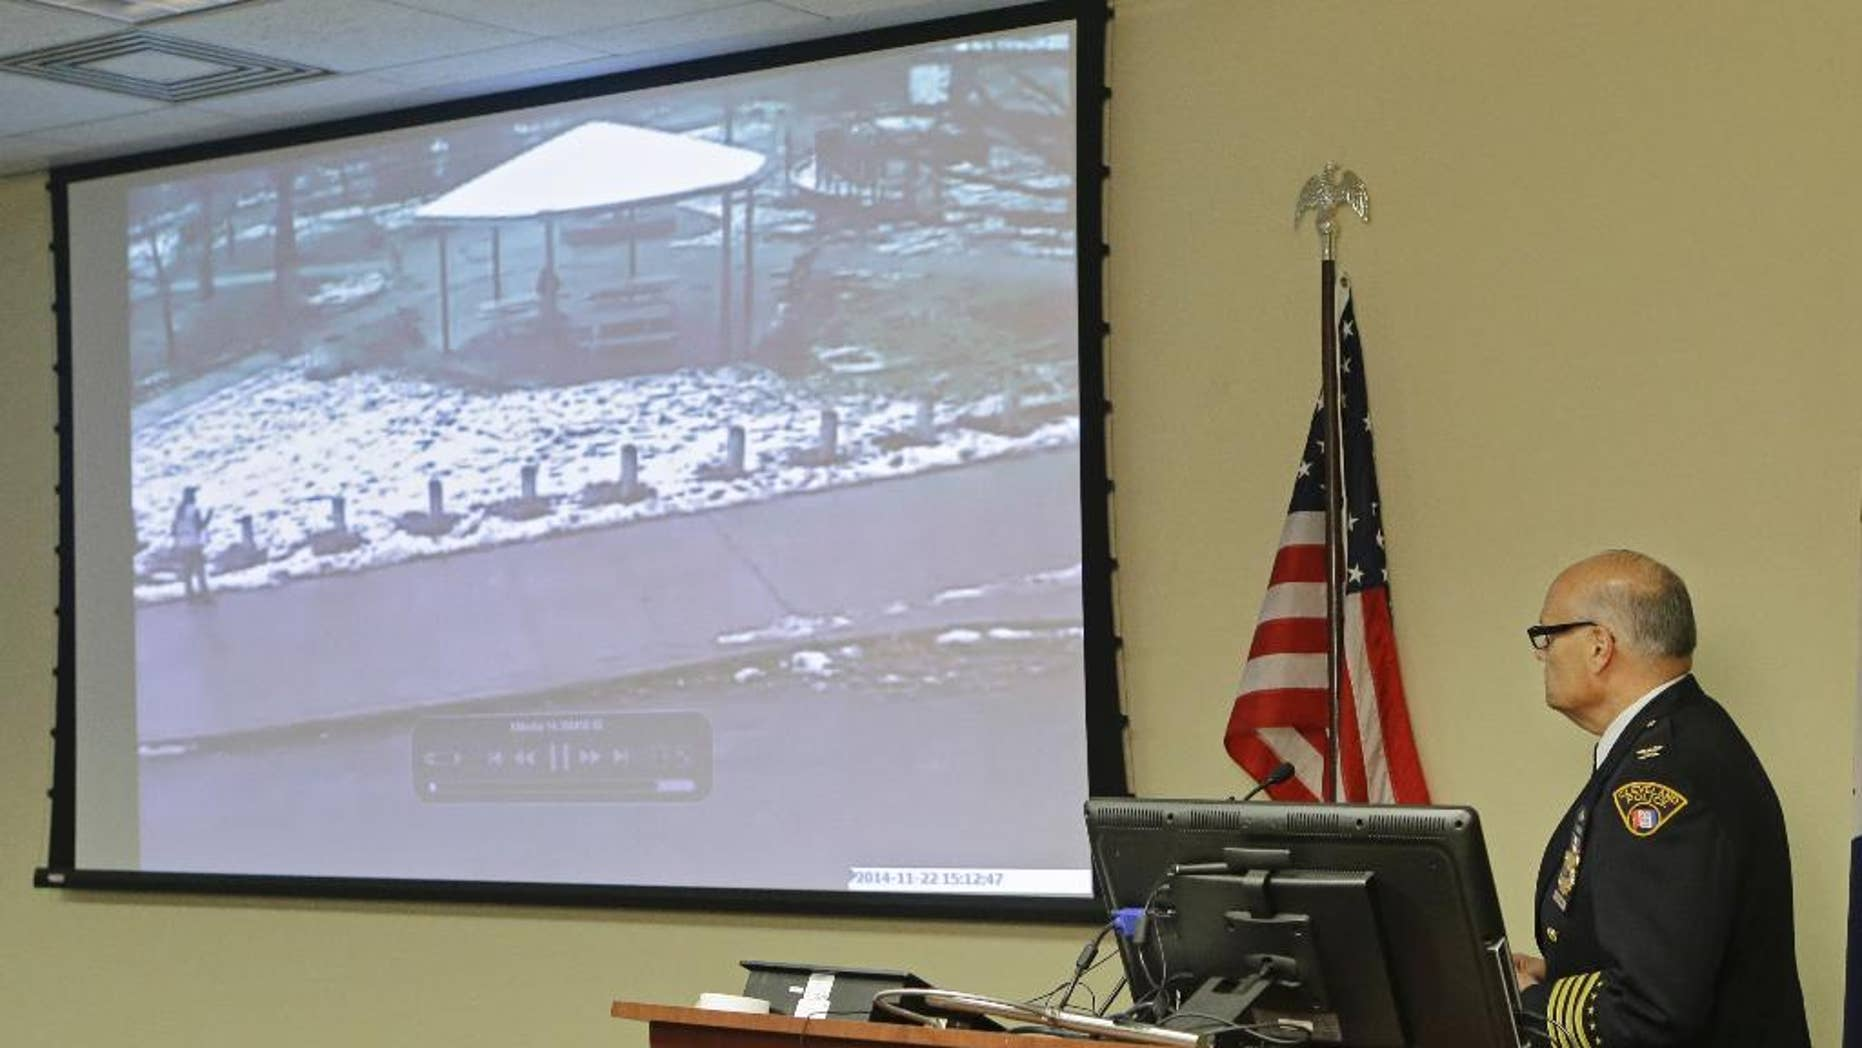 FILE- In this Nov. 26, 2014, file photo, Cleveland Police Deputy Chief Ed Tomba, right, shows surveillance video of the weekend police shooting of Tamir Rice during a news conference in Cleveland. The investigation into Rice's death is being handed over to a county sheriff's office in an attempt to make sure the probe is evenhanded, the city's mayor said Friday, Jan. 2, 2015. (AP Photo/Mark Duncan, File)